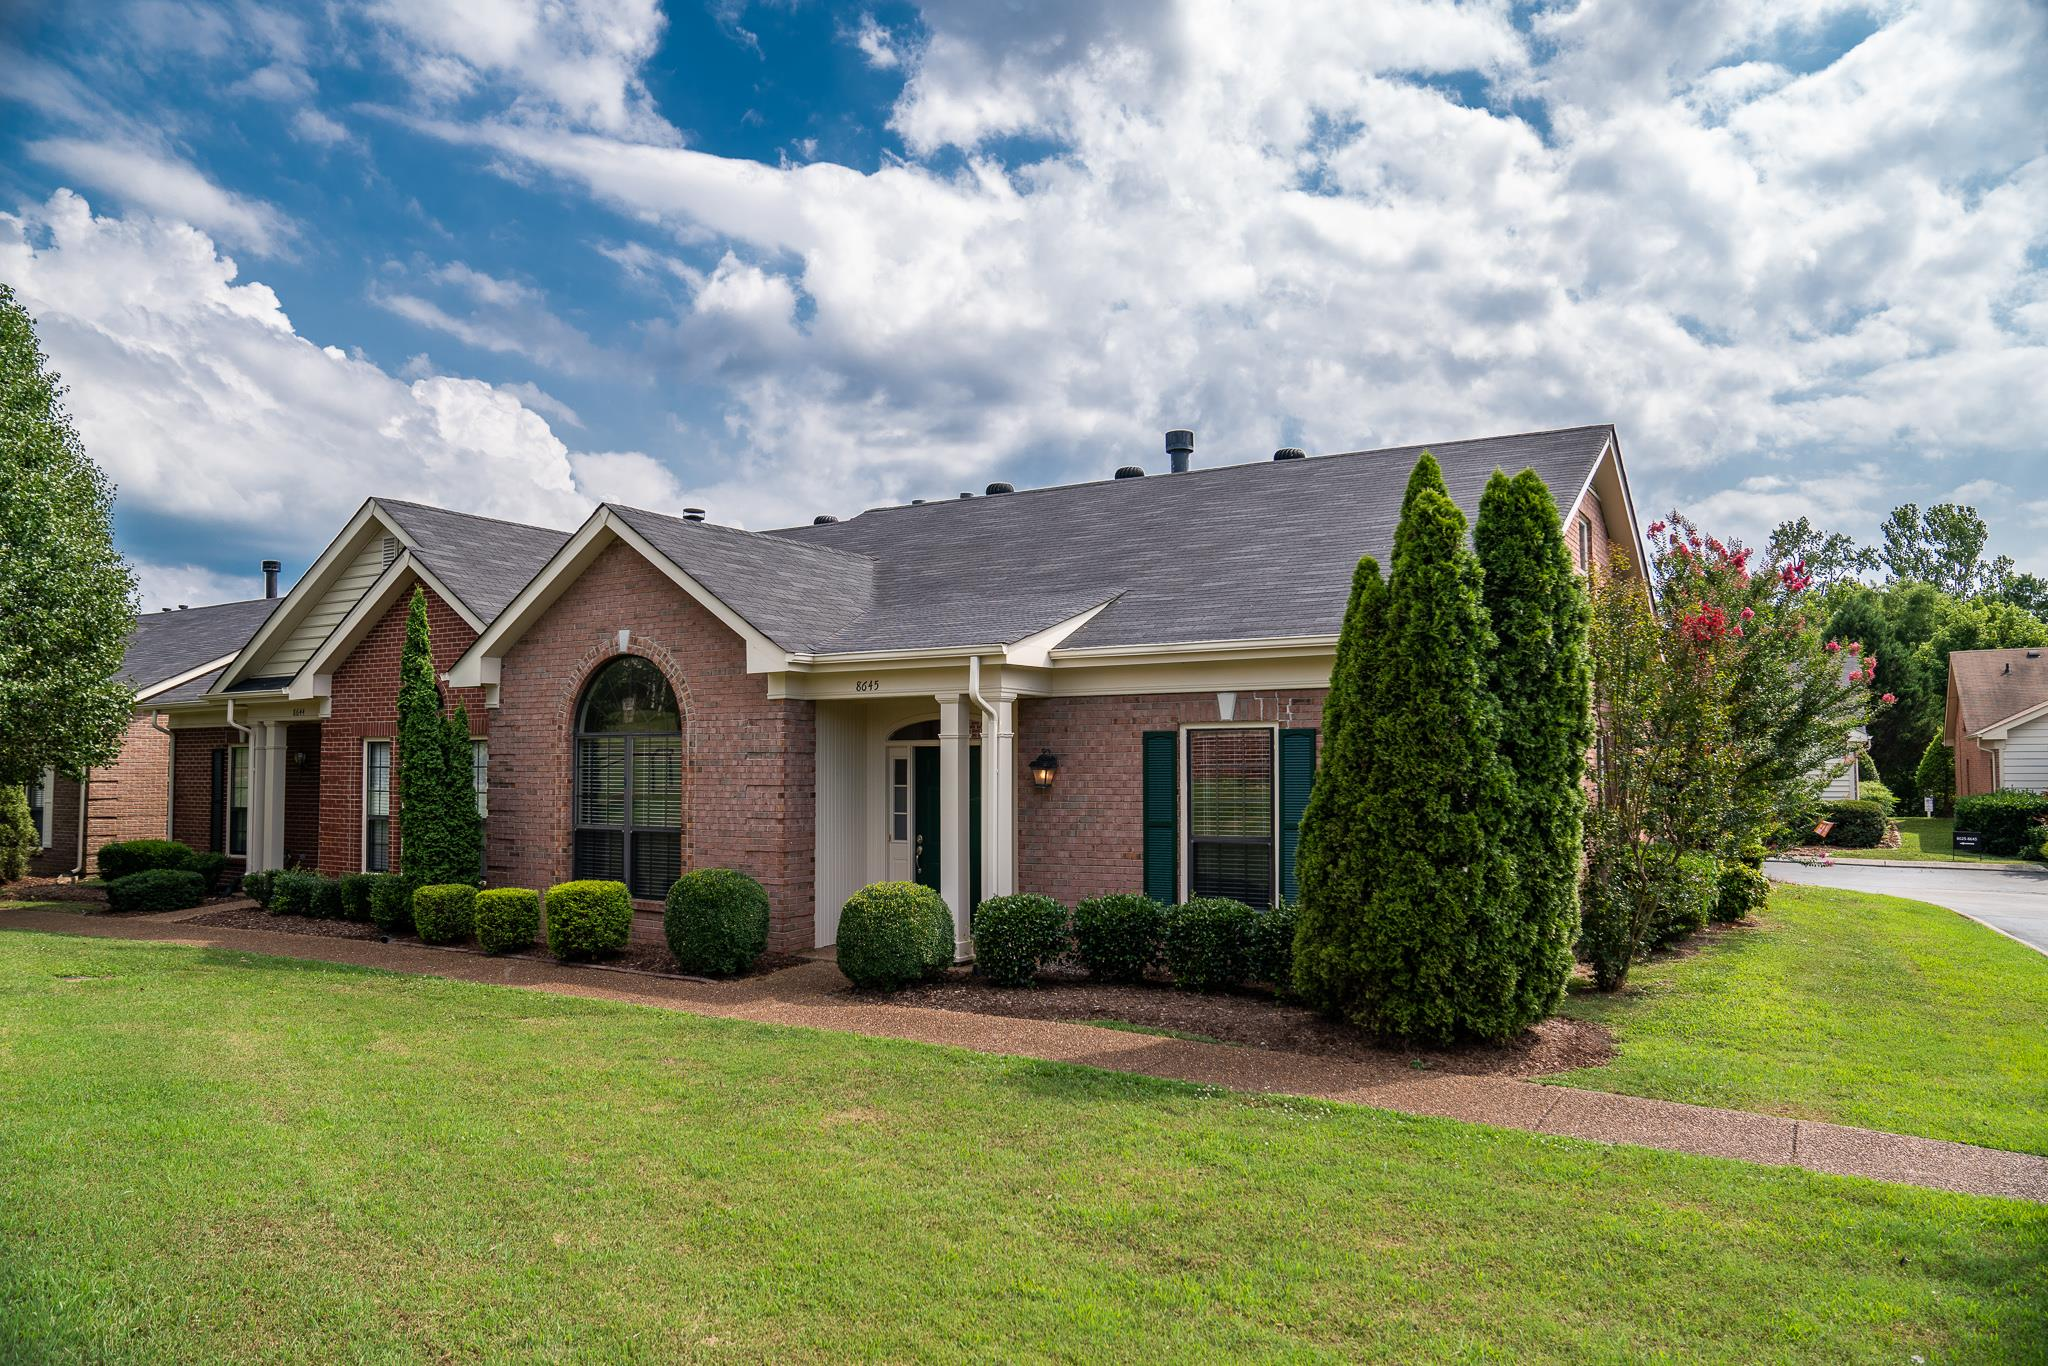 8645 Sawyer Brown Rd, Bellevue in Davidson County County, TN 37221 Home for Sale